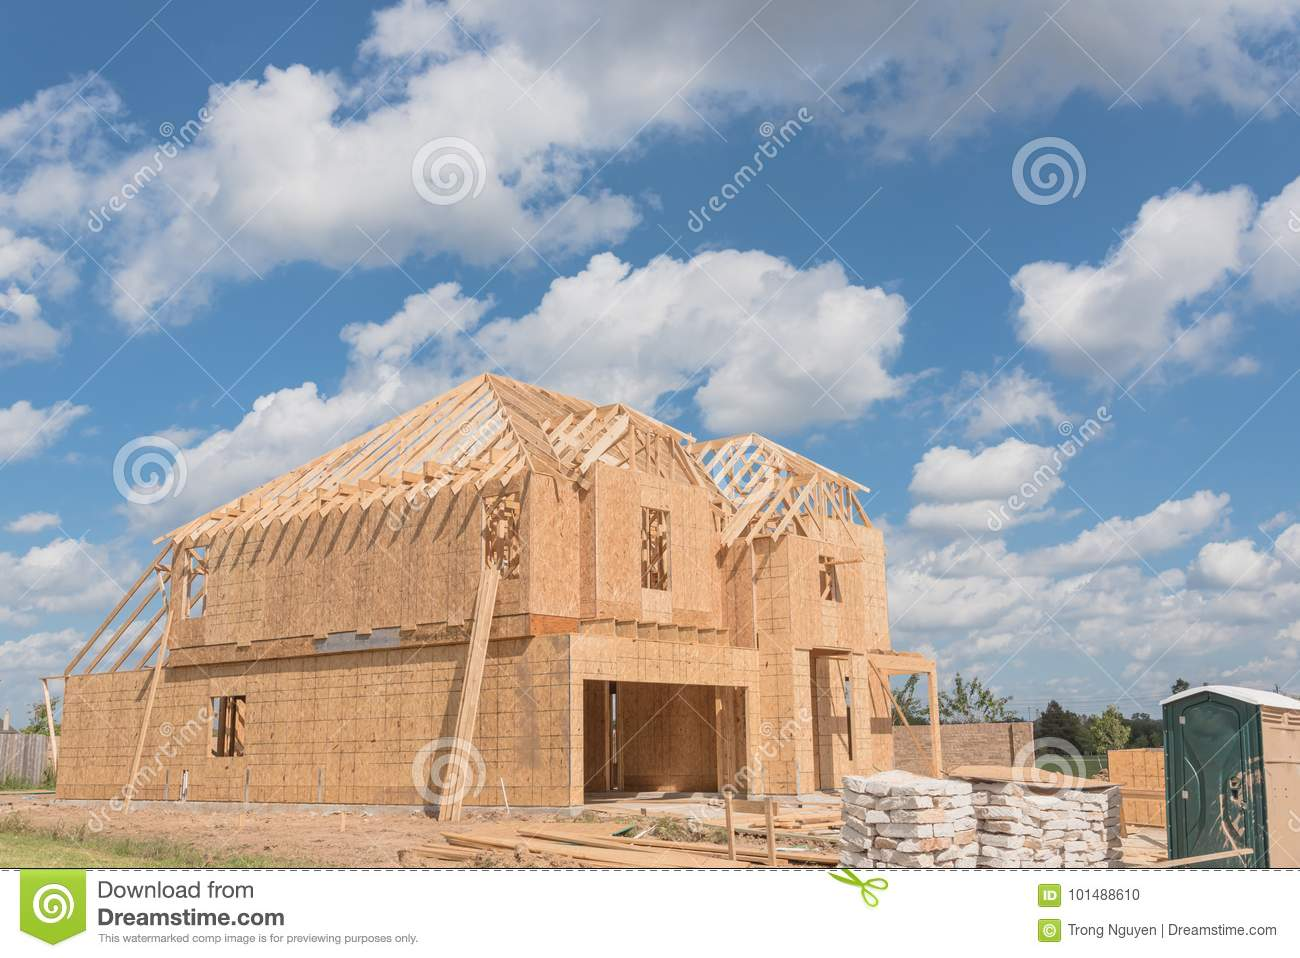 Wooden frame house under construction Pearland, Texas, USA